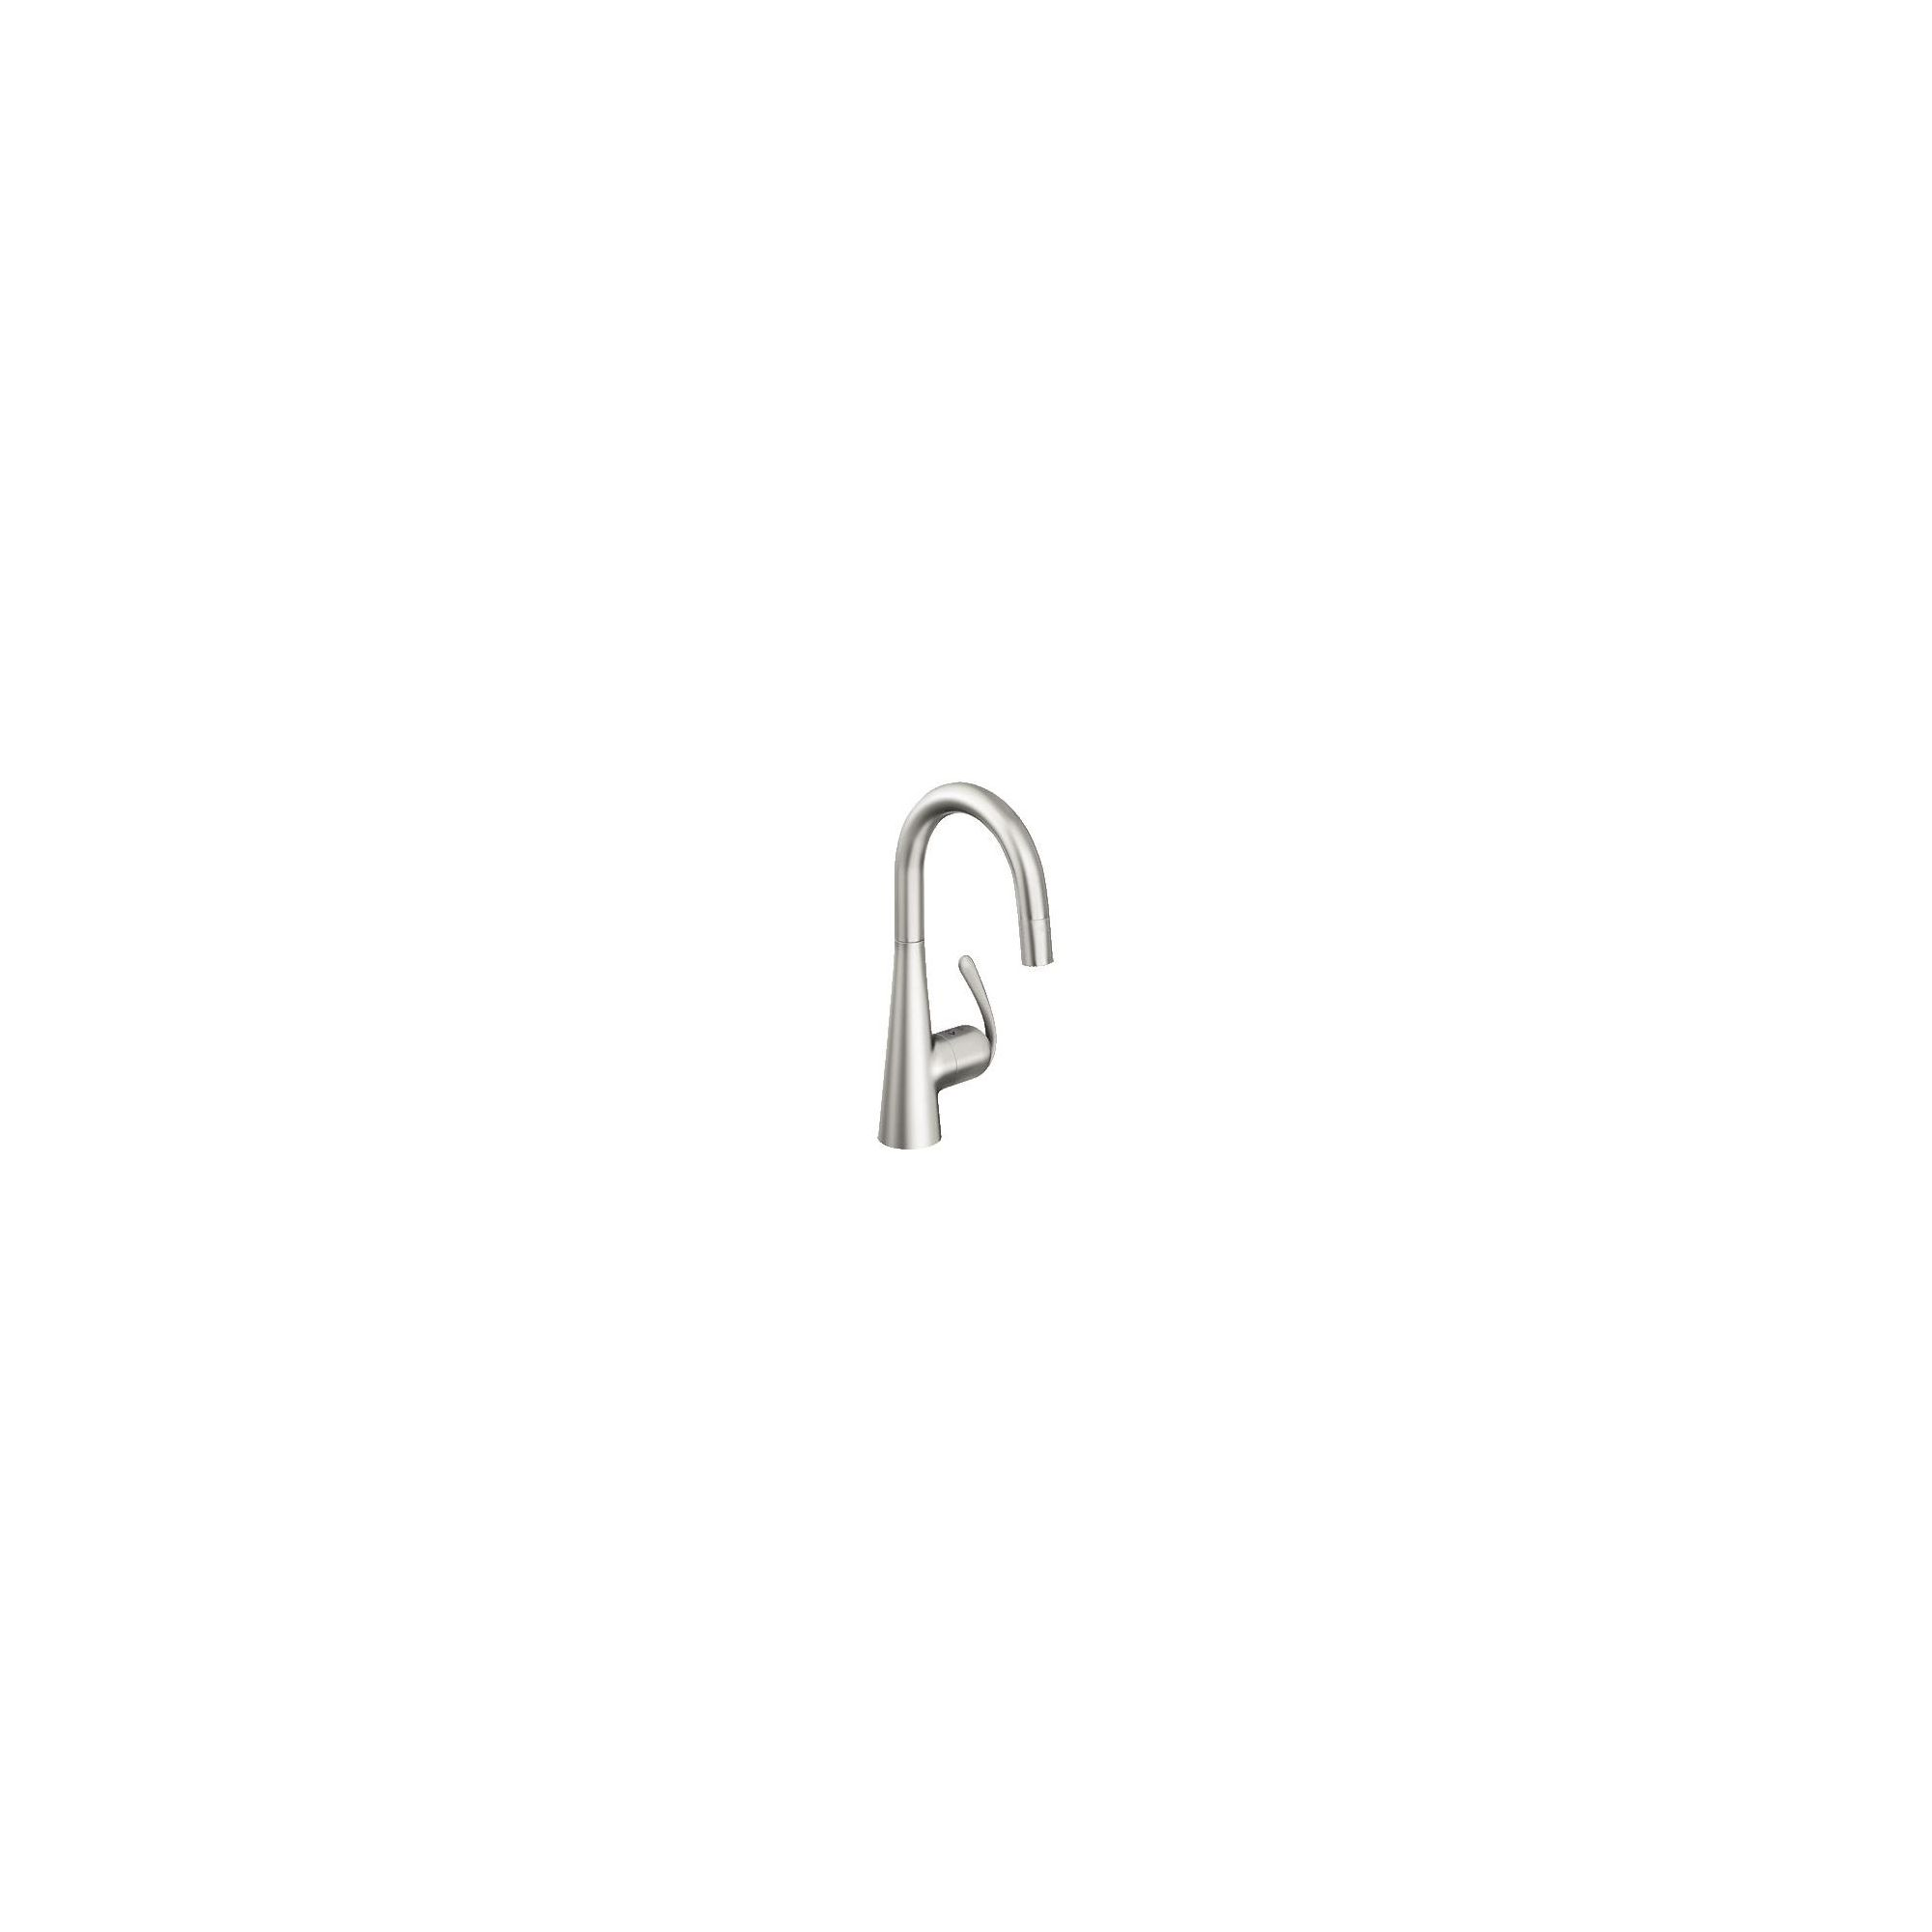 Grohe Zedra Mono Sink Mixer Tap, Pull-Down Spray, Single Handle, RealSteel at Tesco Direct